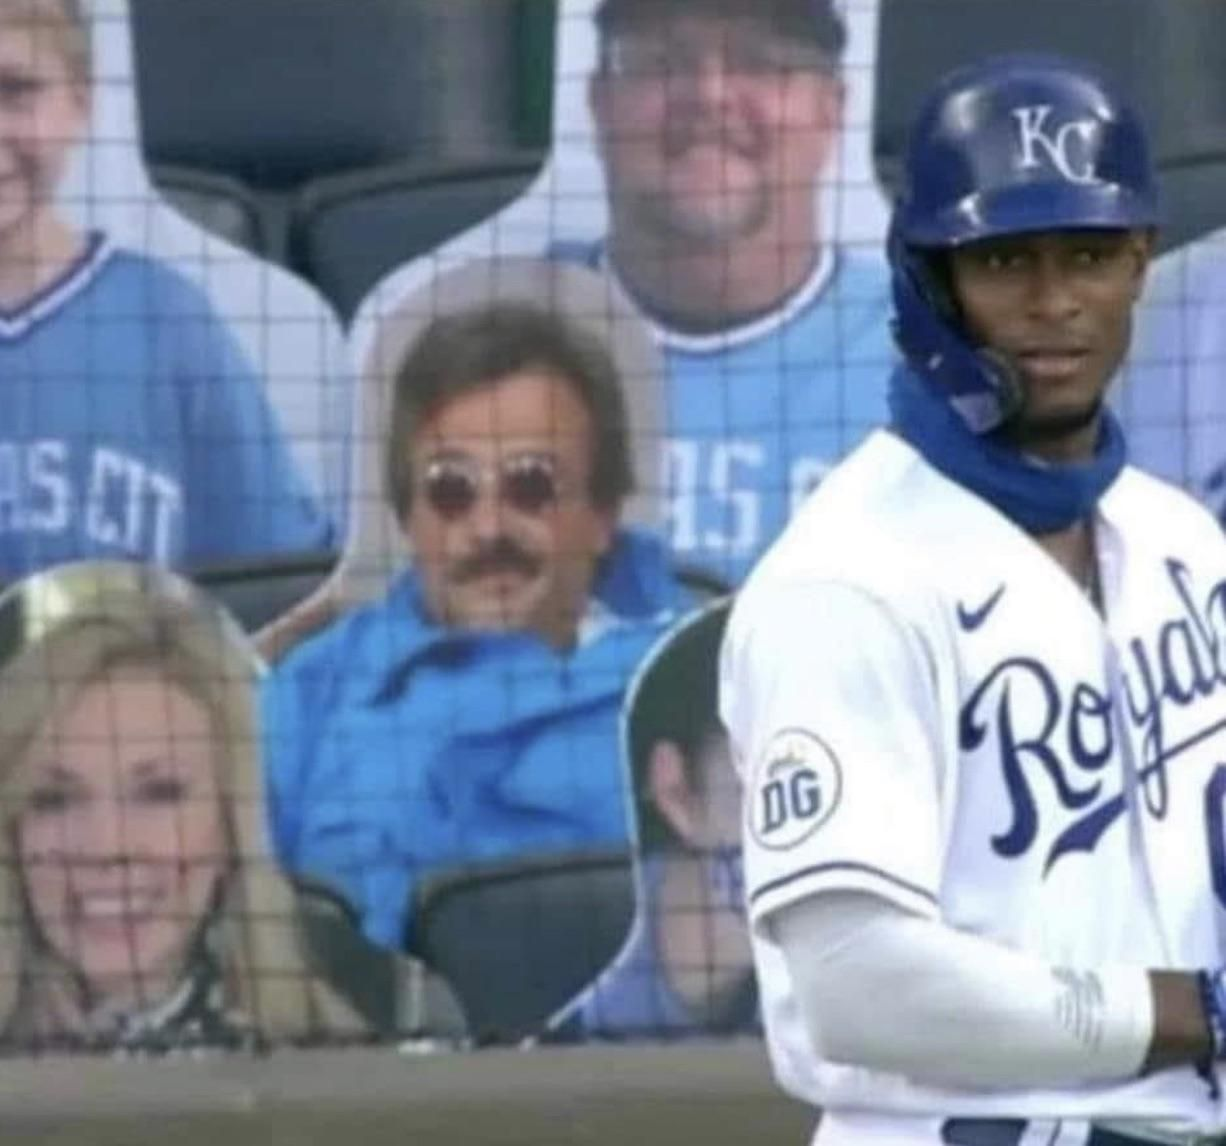 Somebody put a weekend at Bernies cardboard cutout in the stands of a baseball game, I love it.